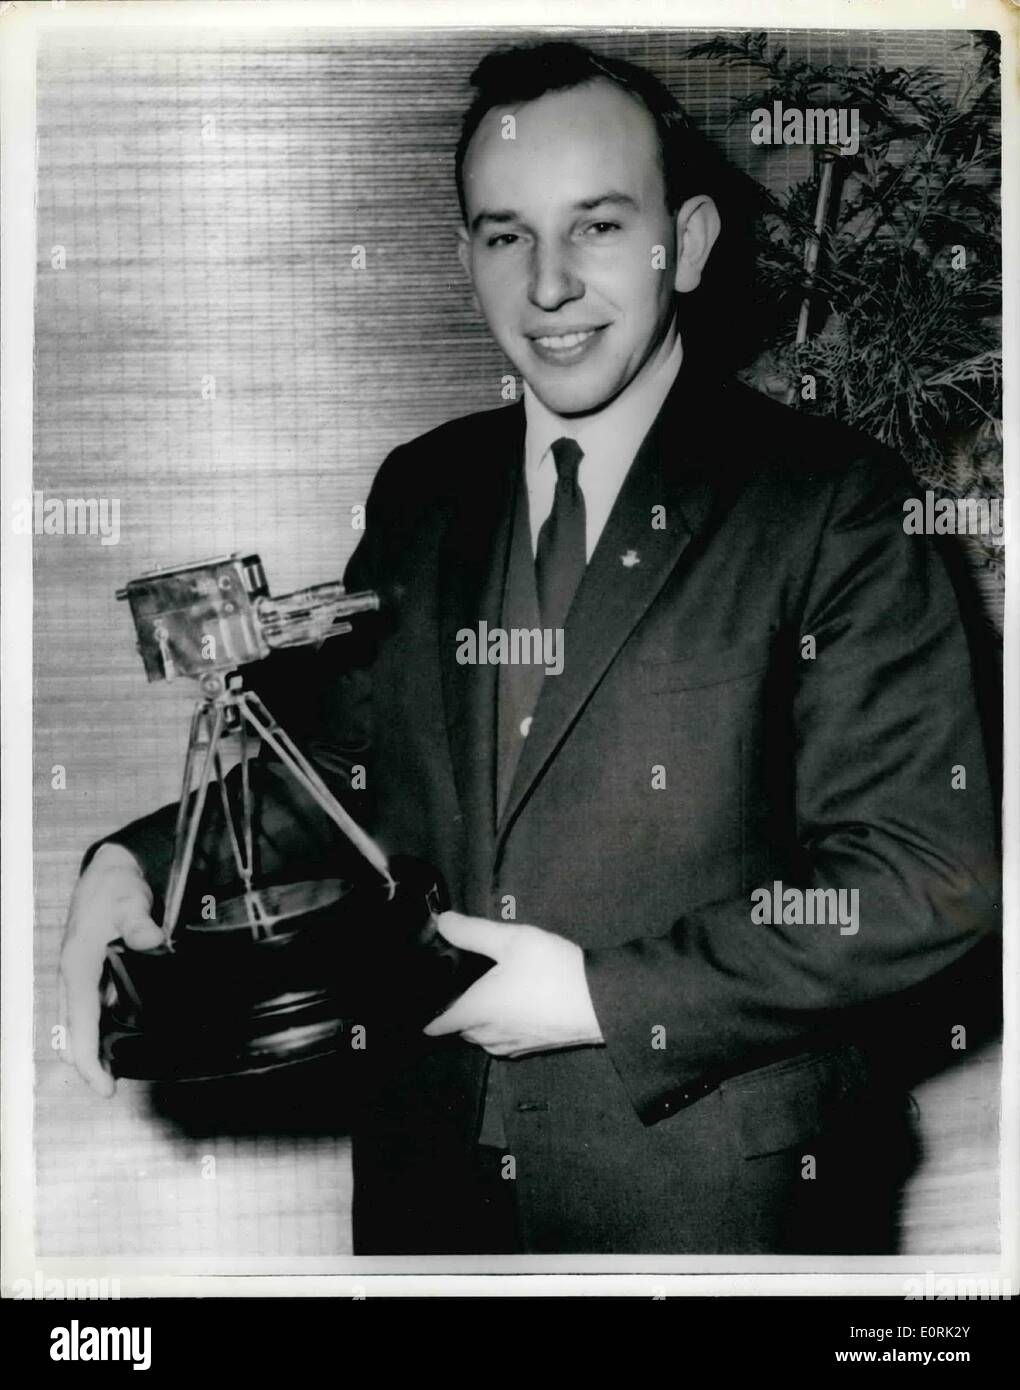 Dec. 12, 1959 - John Surtees is chosen as TV's Sportsman of the year: John Surtees, the fastest man in the world on a motor-cycle, was last night chosen to Sports Personality of 1959 by B.B.C. Television's Sportsview Surtees, world motor-cycling champion for the second year in succession, was presented with the trophy a miniature television camera by Sir John Hunt, of Everest fame. Photo shows John Surtees the fastest man in the world a motorcycle pictured with his trophy after the presentation last night. - Stock Image